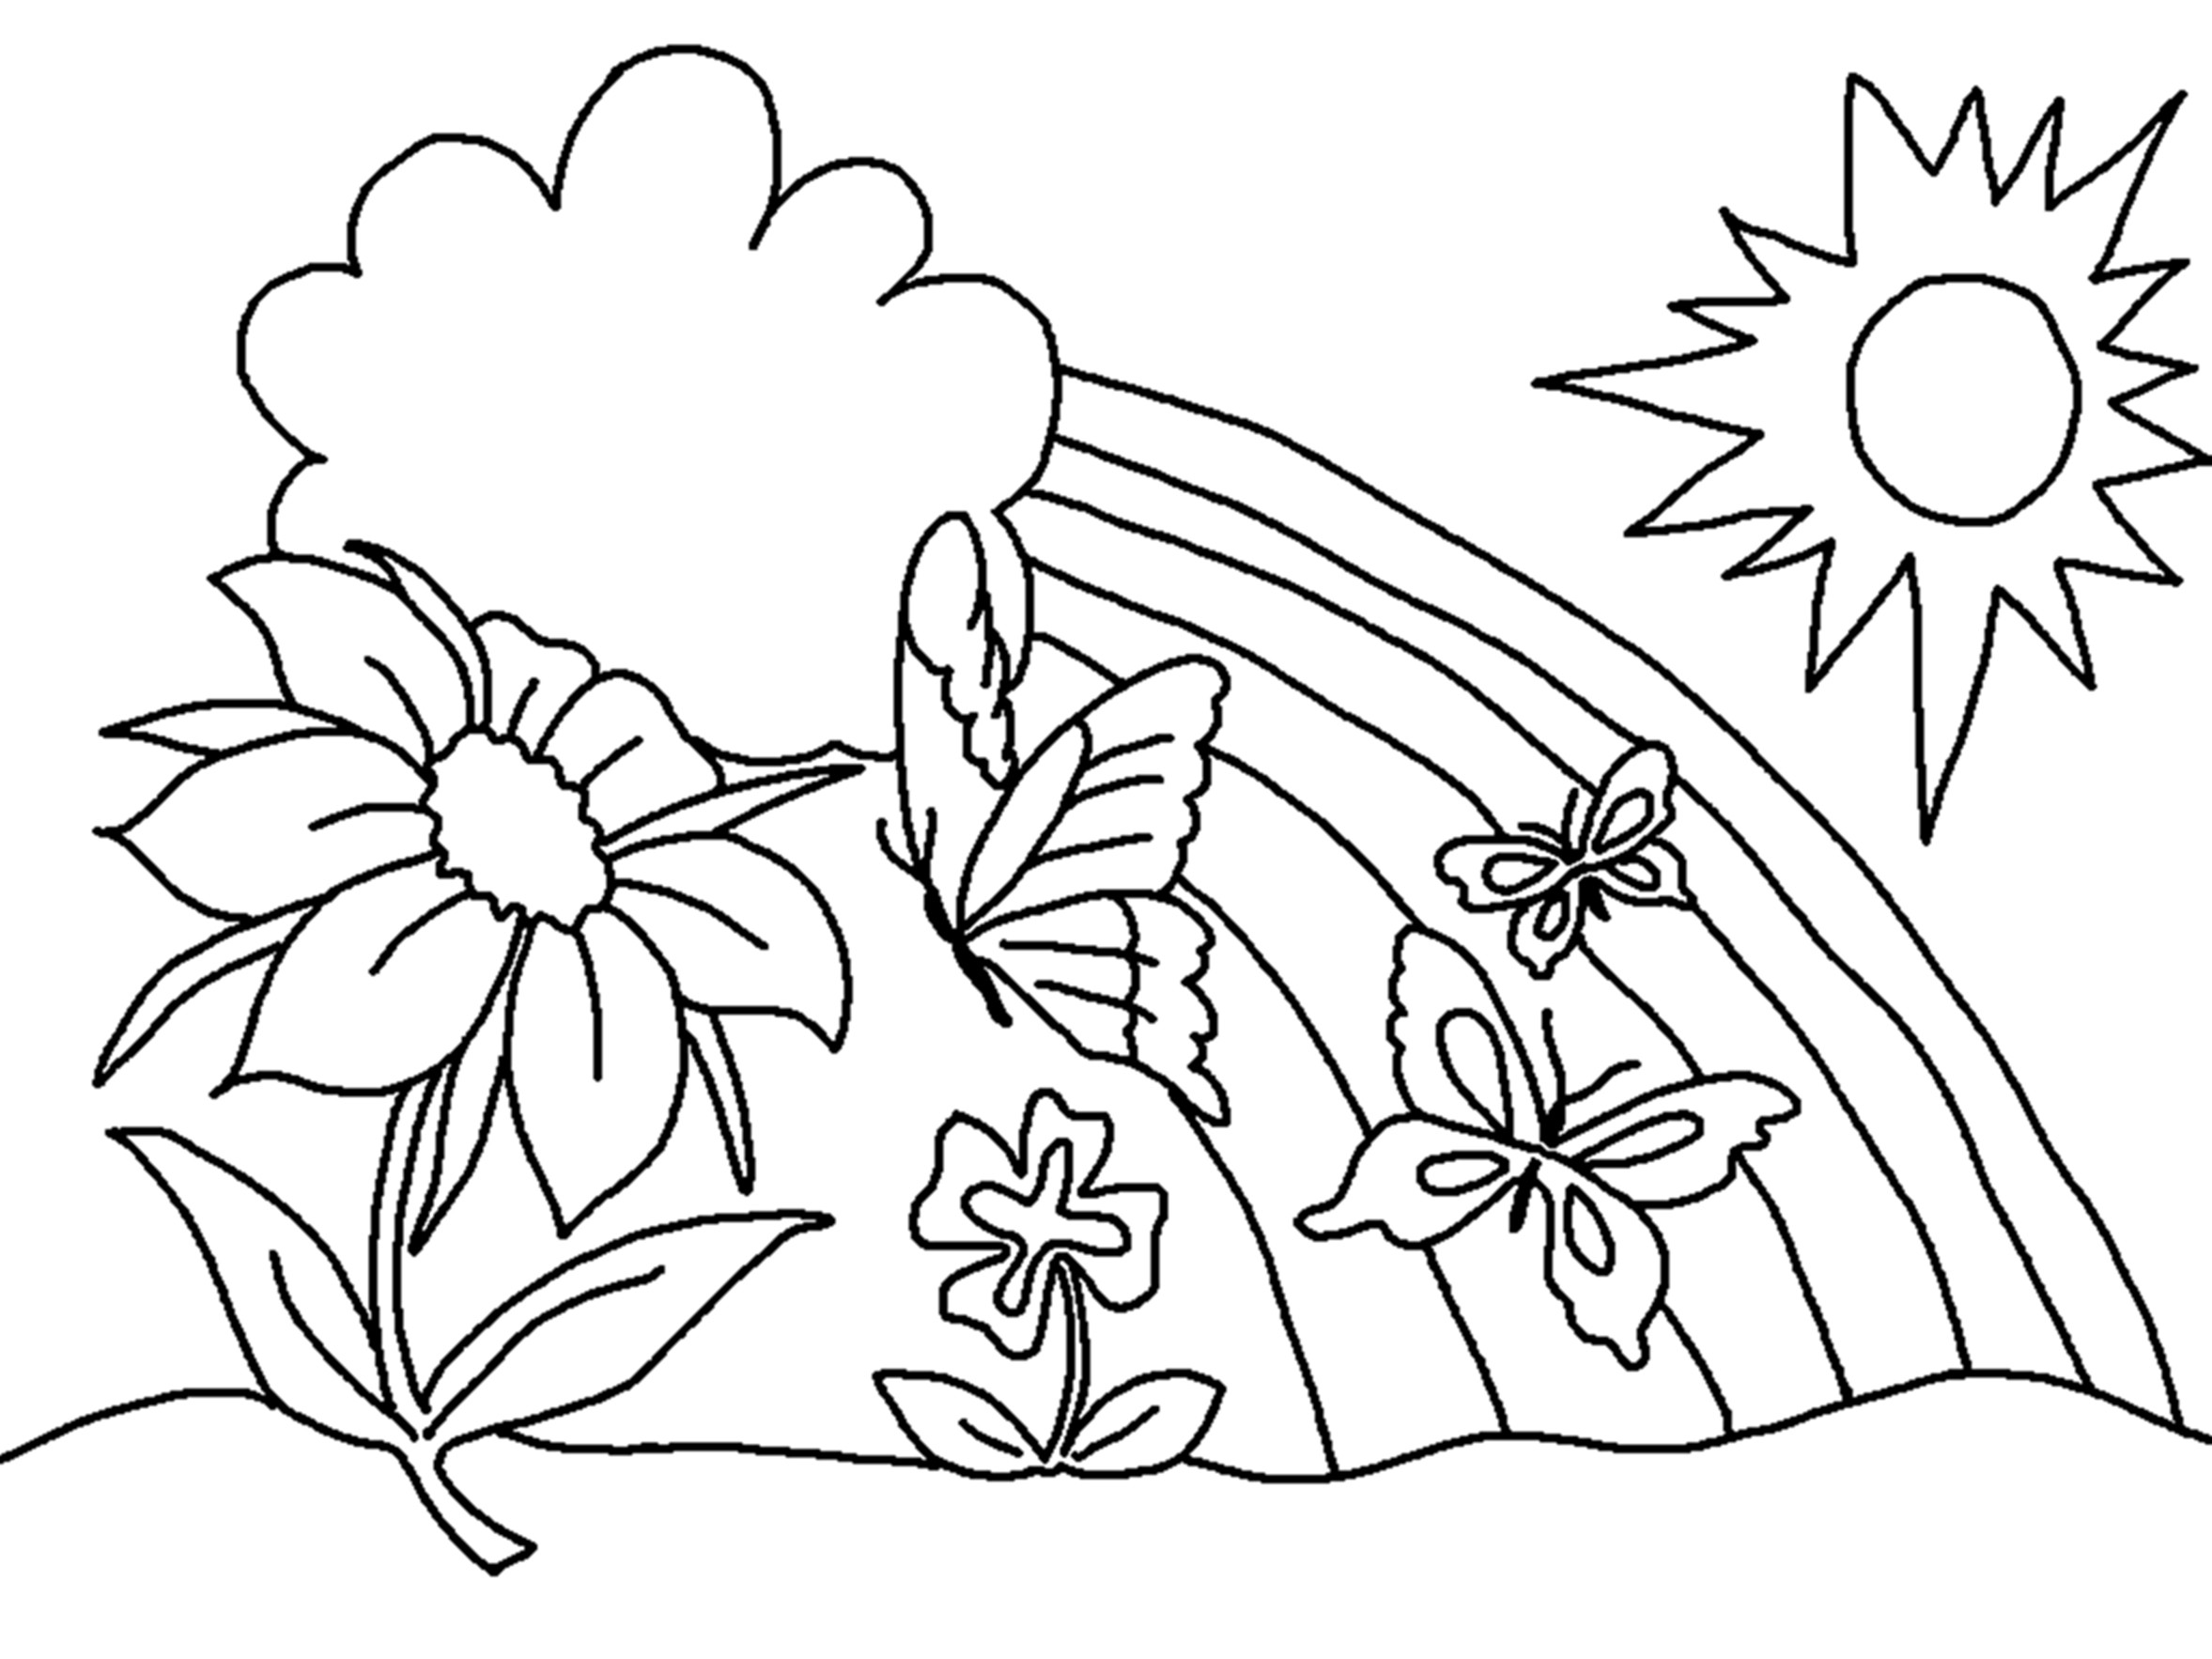 Best ideas about Flower Printable Coloring Sheets . Save or Pin Free Printable Flower Coloring Pages For Kids Best Now.